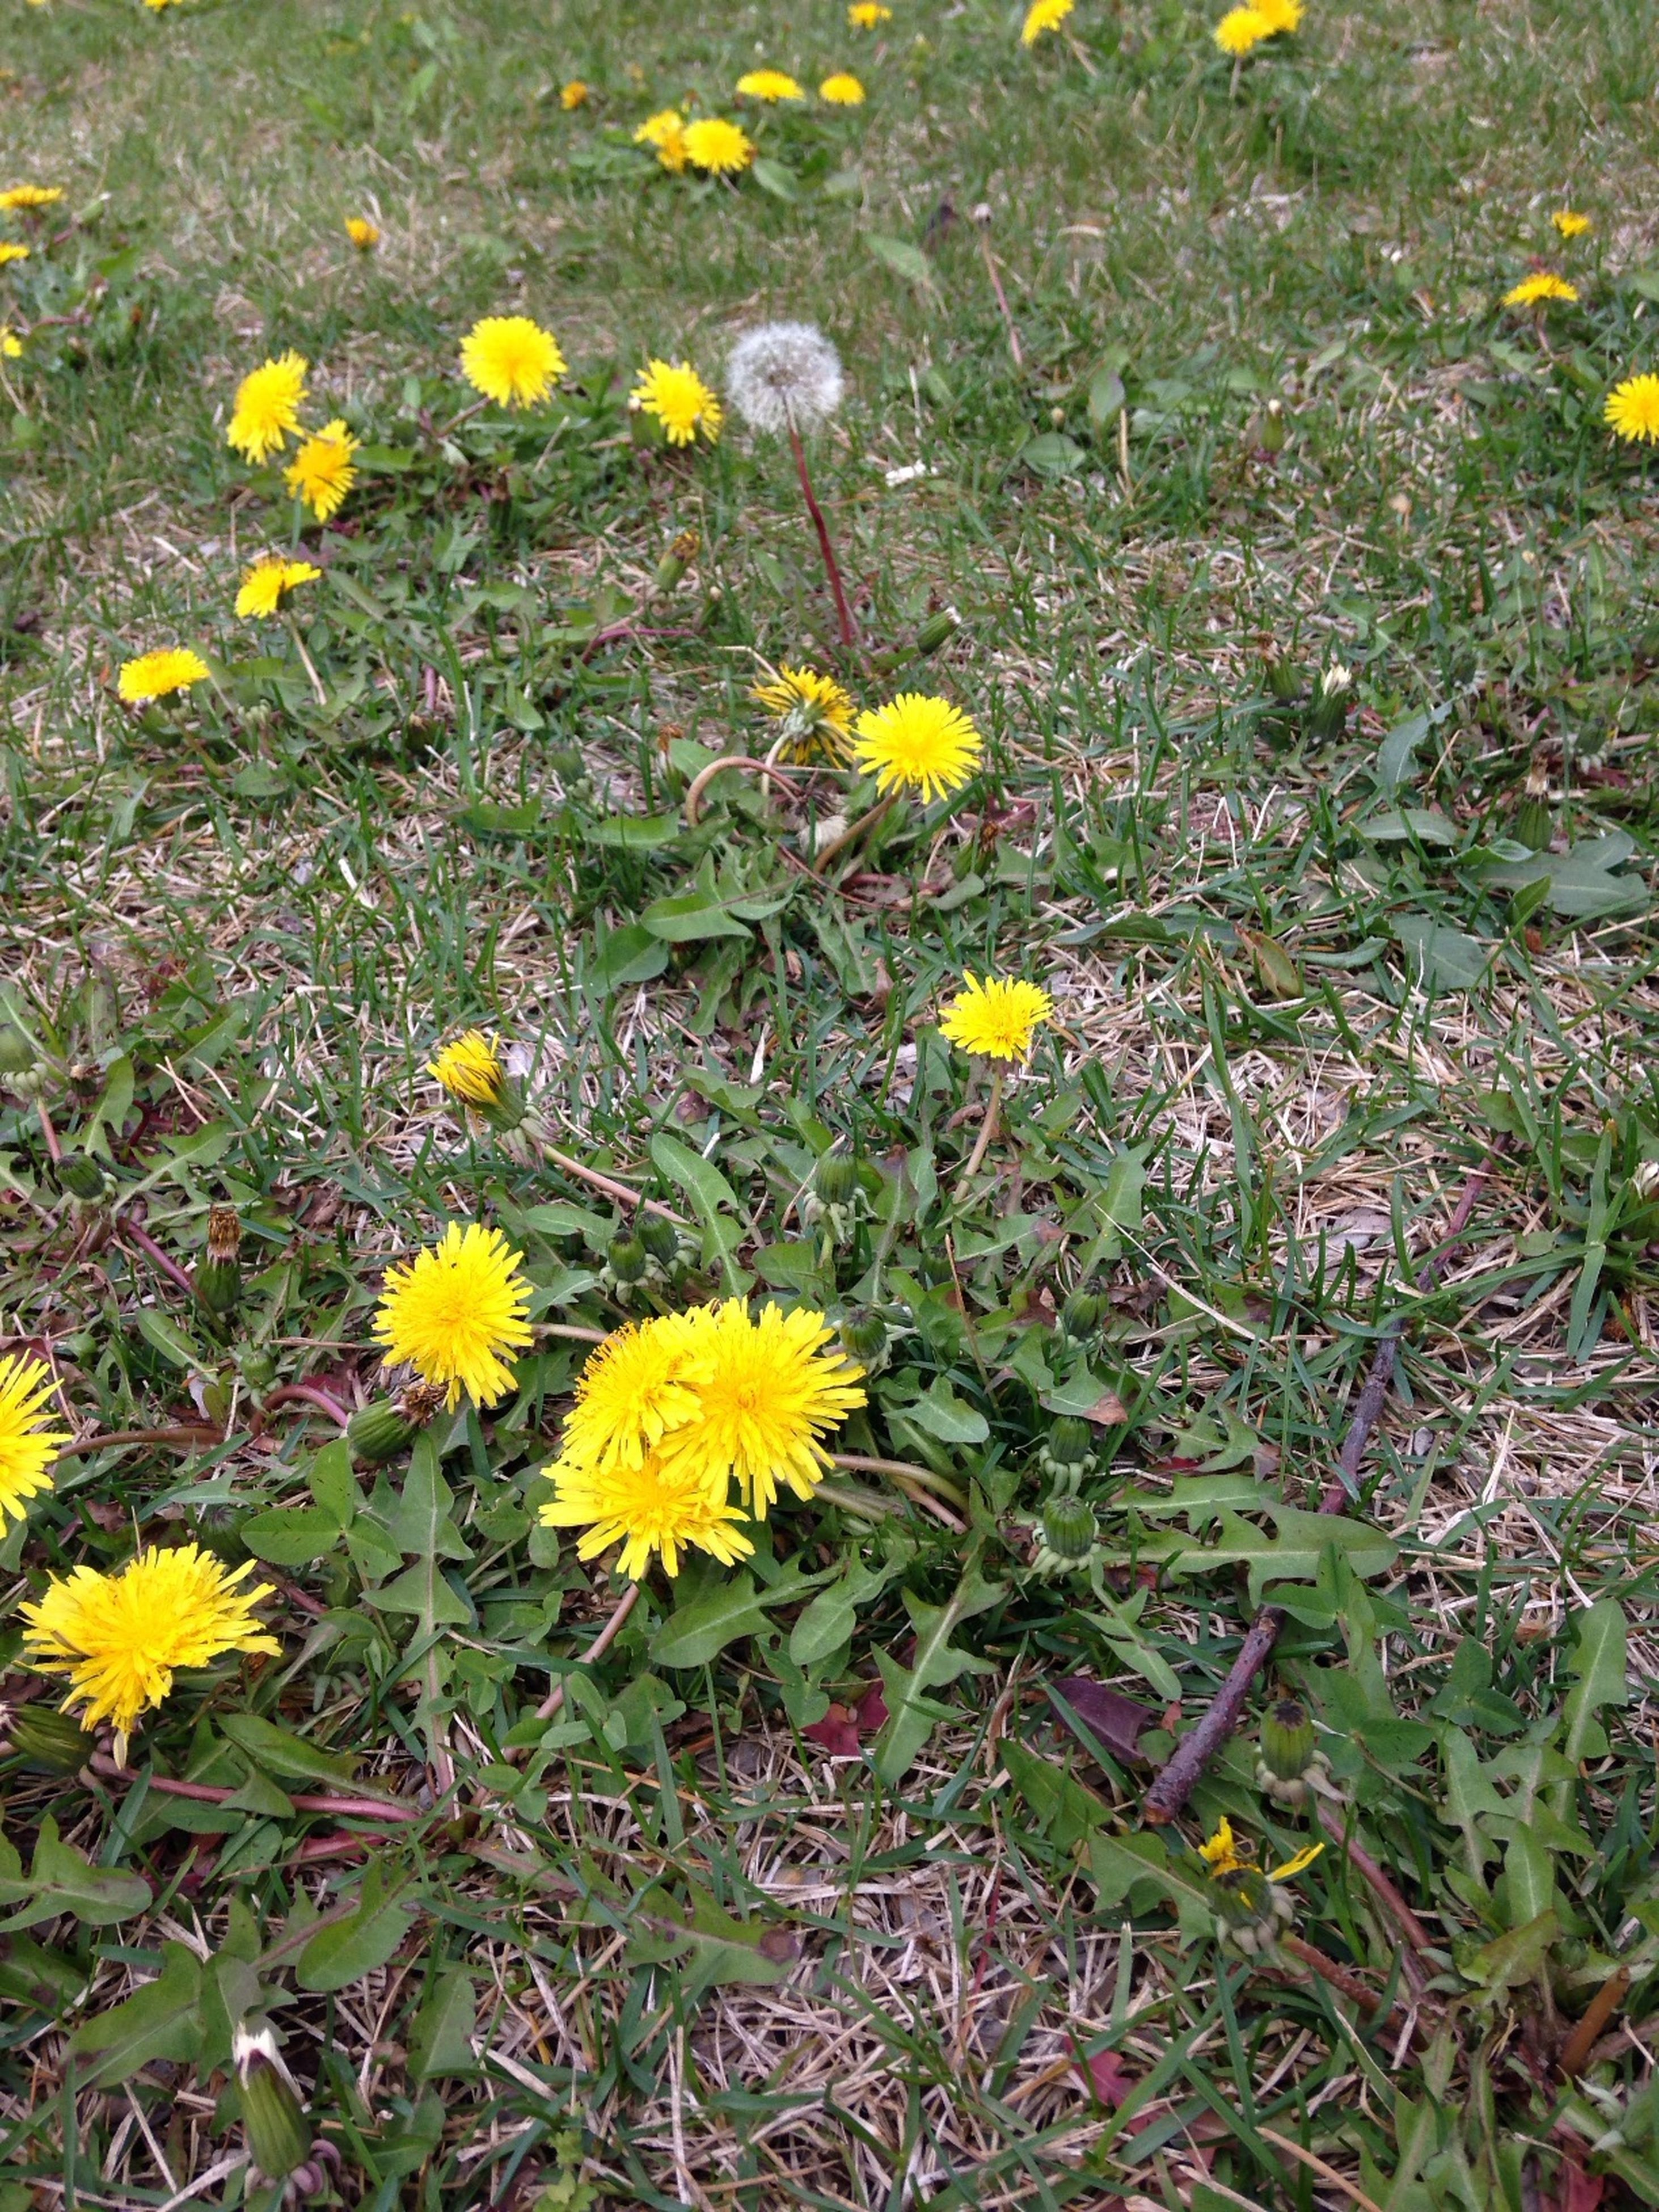 flower, yellow, freshness, growth, fragility, field, petal, beauty in nature, grass, flower head, blooming, plant, nature, high angle view, daisy, green color, wildflower, in bloom, day, outdoors